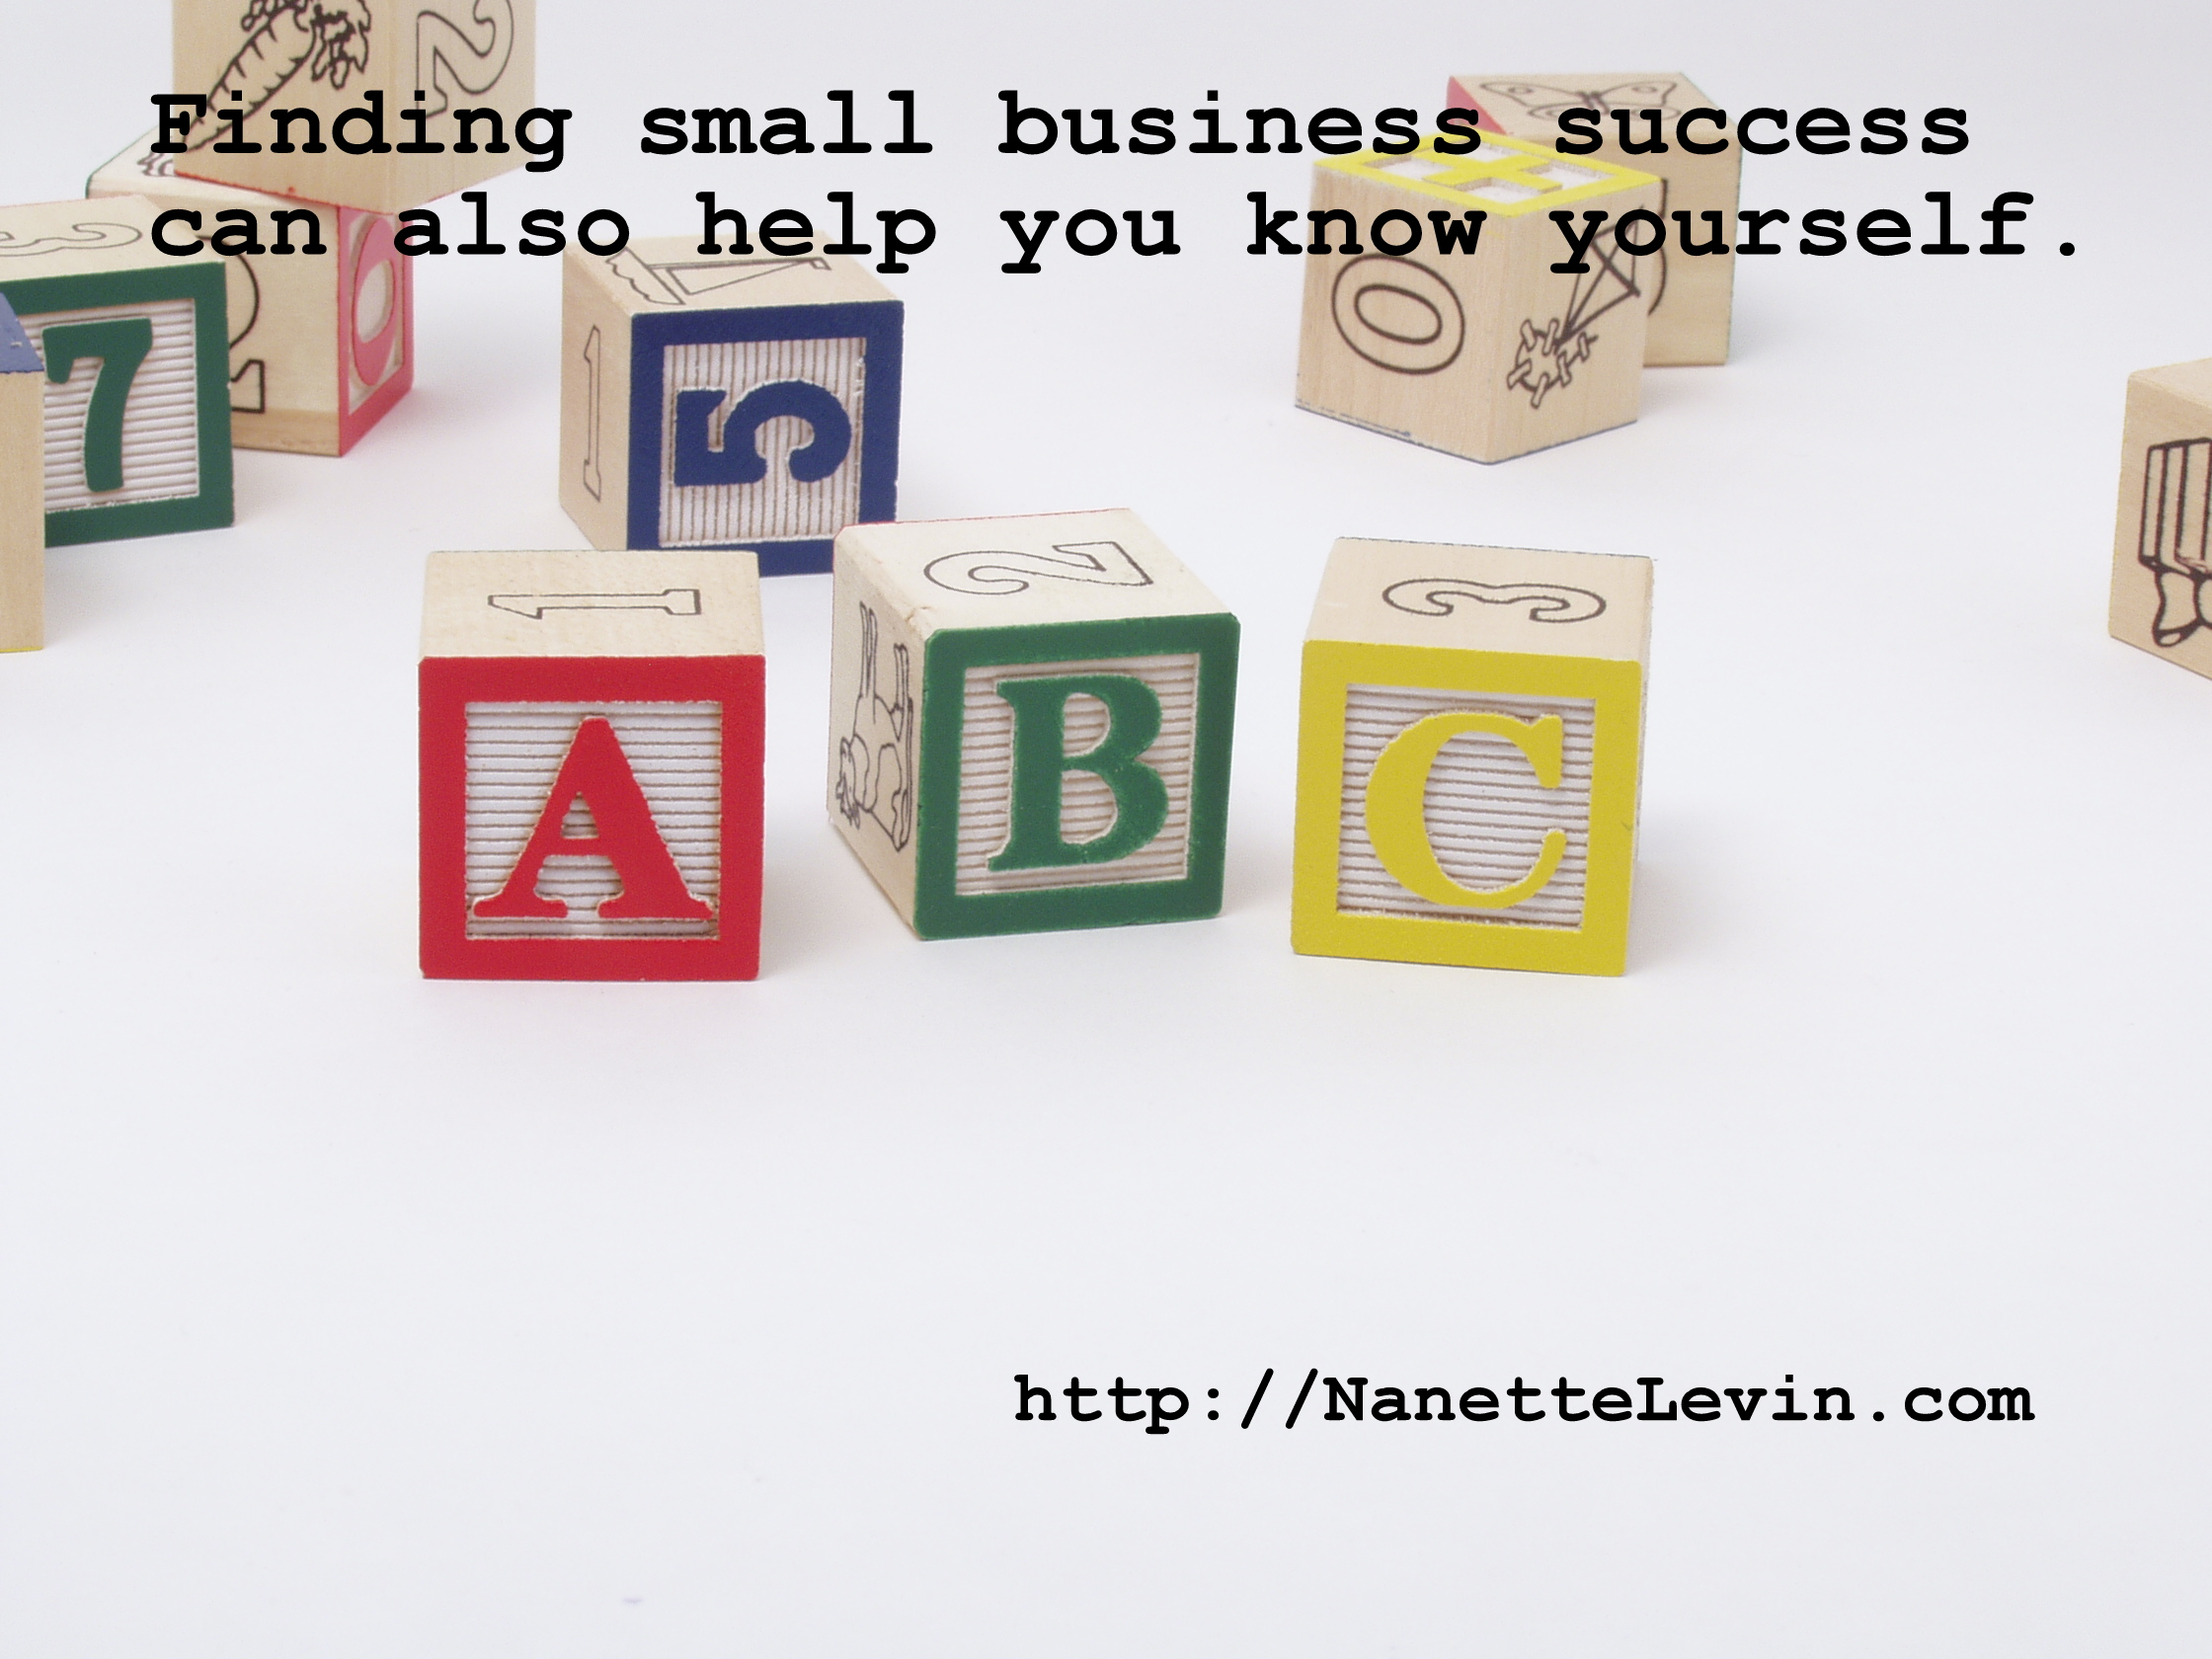 small business success can come in strange ways